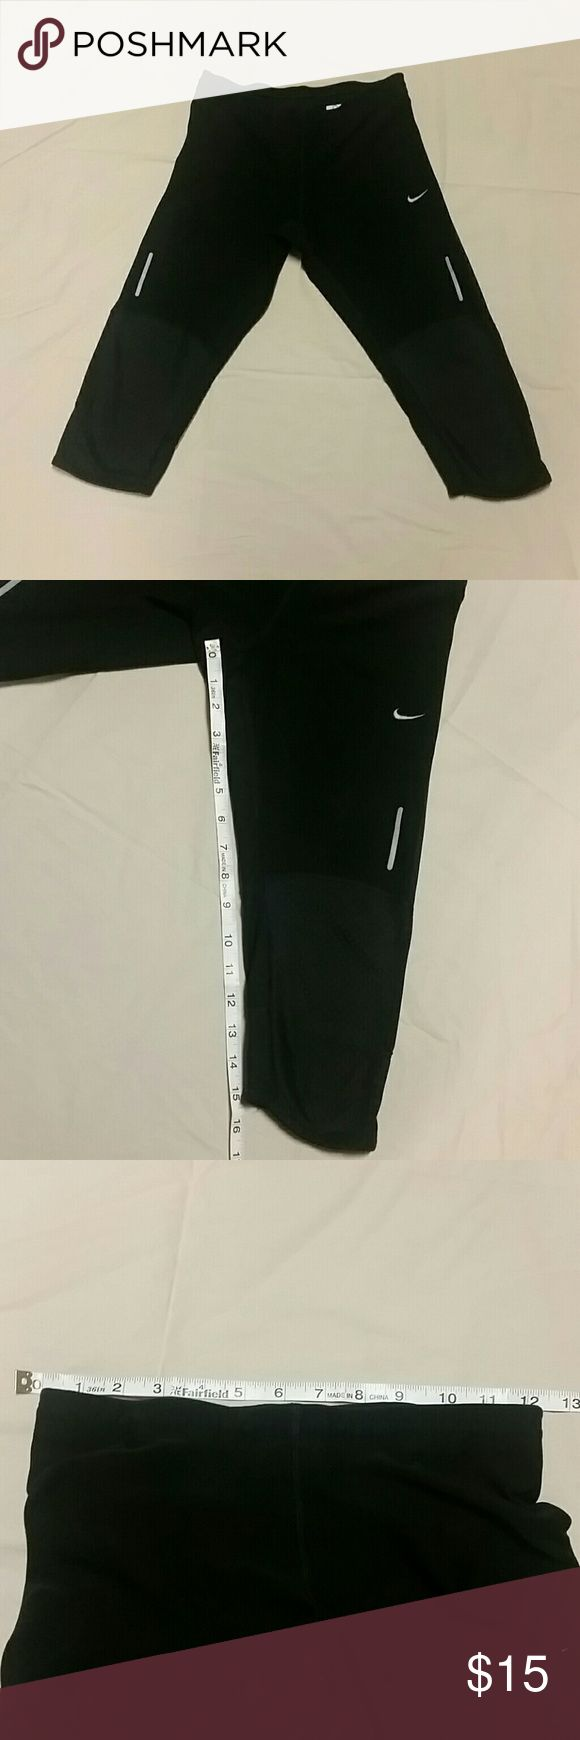 Nike dri fit running tights knee length xsmall Black Nike running tights knee length dri fit material back zip pocket mesh at back of knees, see pics for measurements, reflective strips on outside of thighs, leggings, yoga Nike Pants Track Pants & Joggers